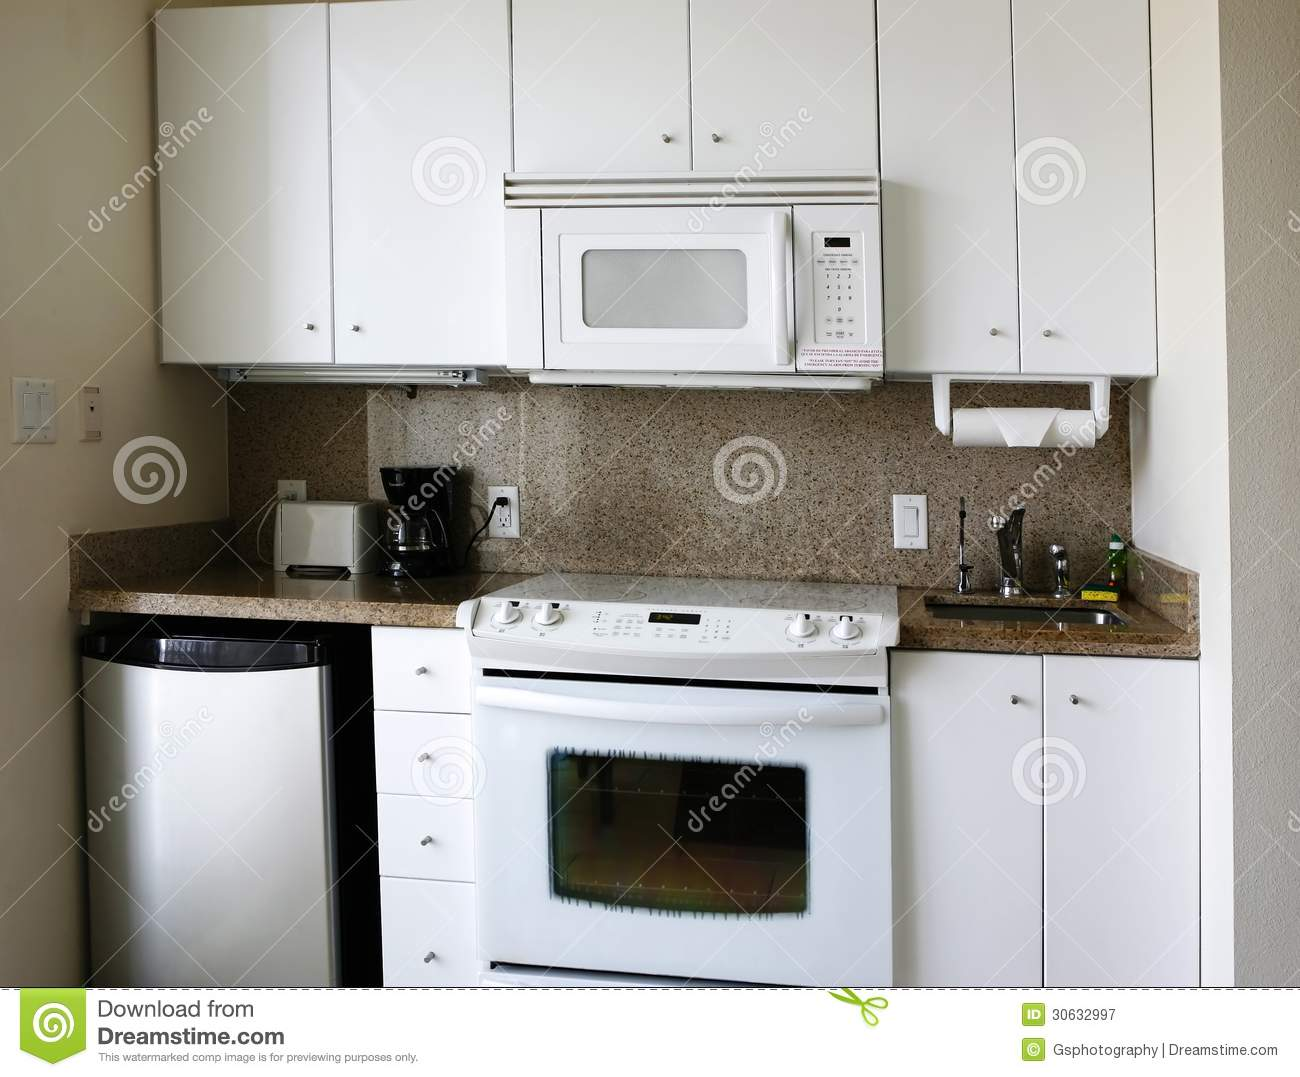 Kitchenette Royalty Free Stock Photography Image 30632997